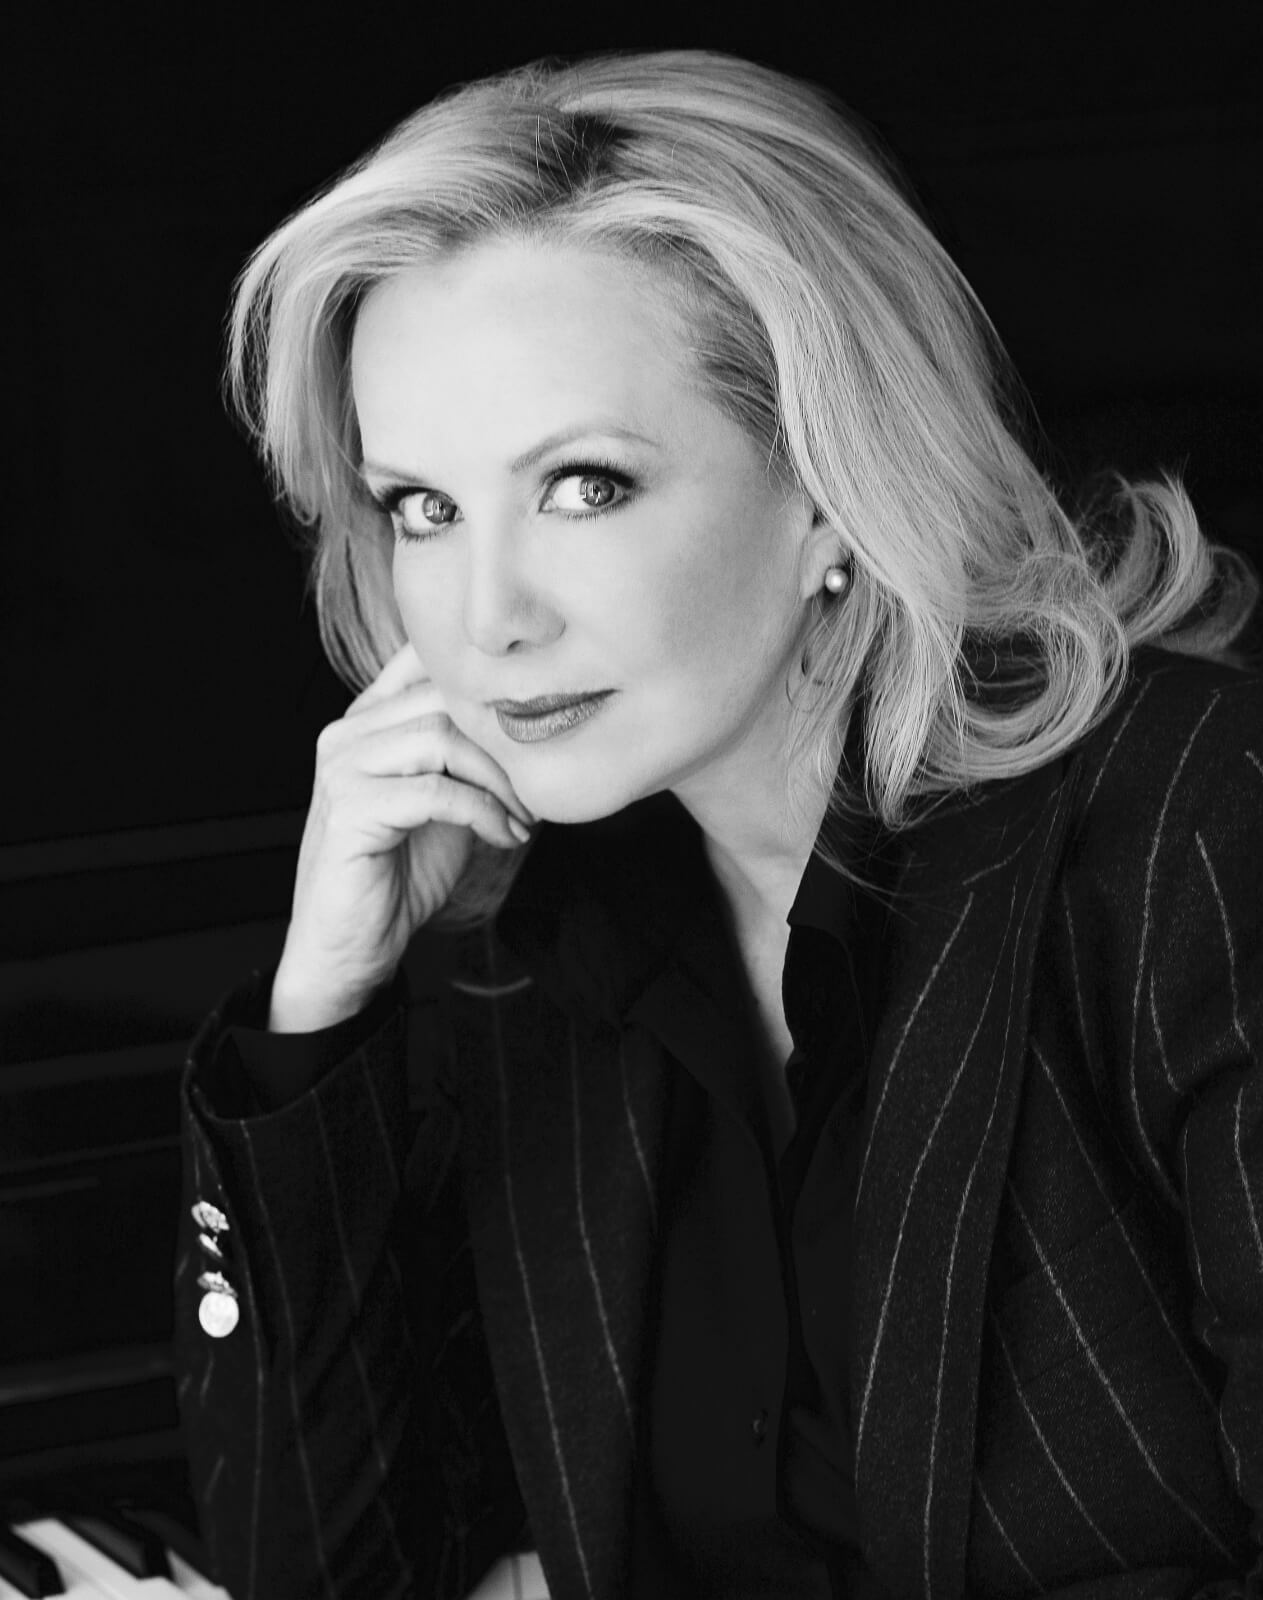 Headshot of Susan Stroman in pinstriped suit with chin resting on upstage hand. This photo is in black and white.